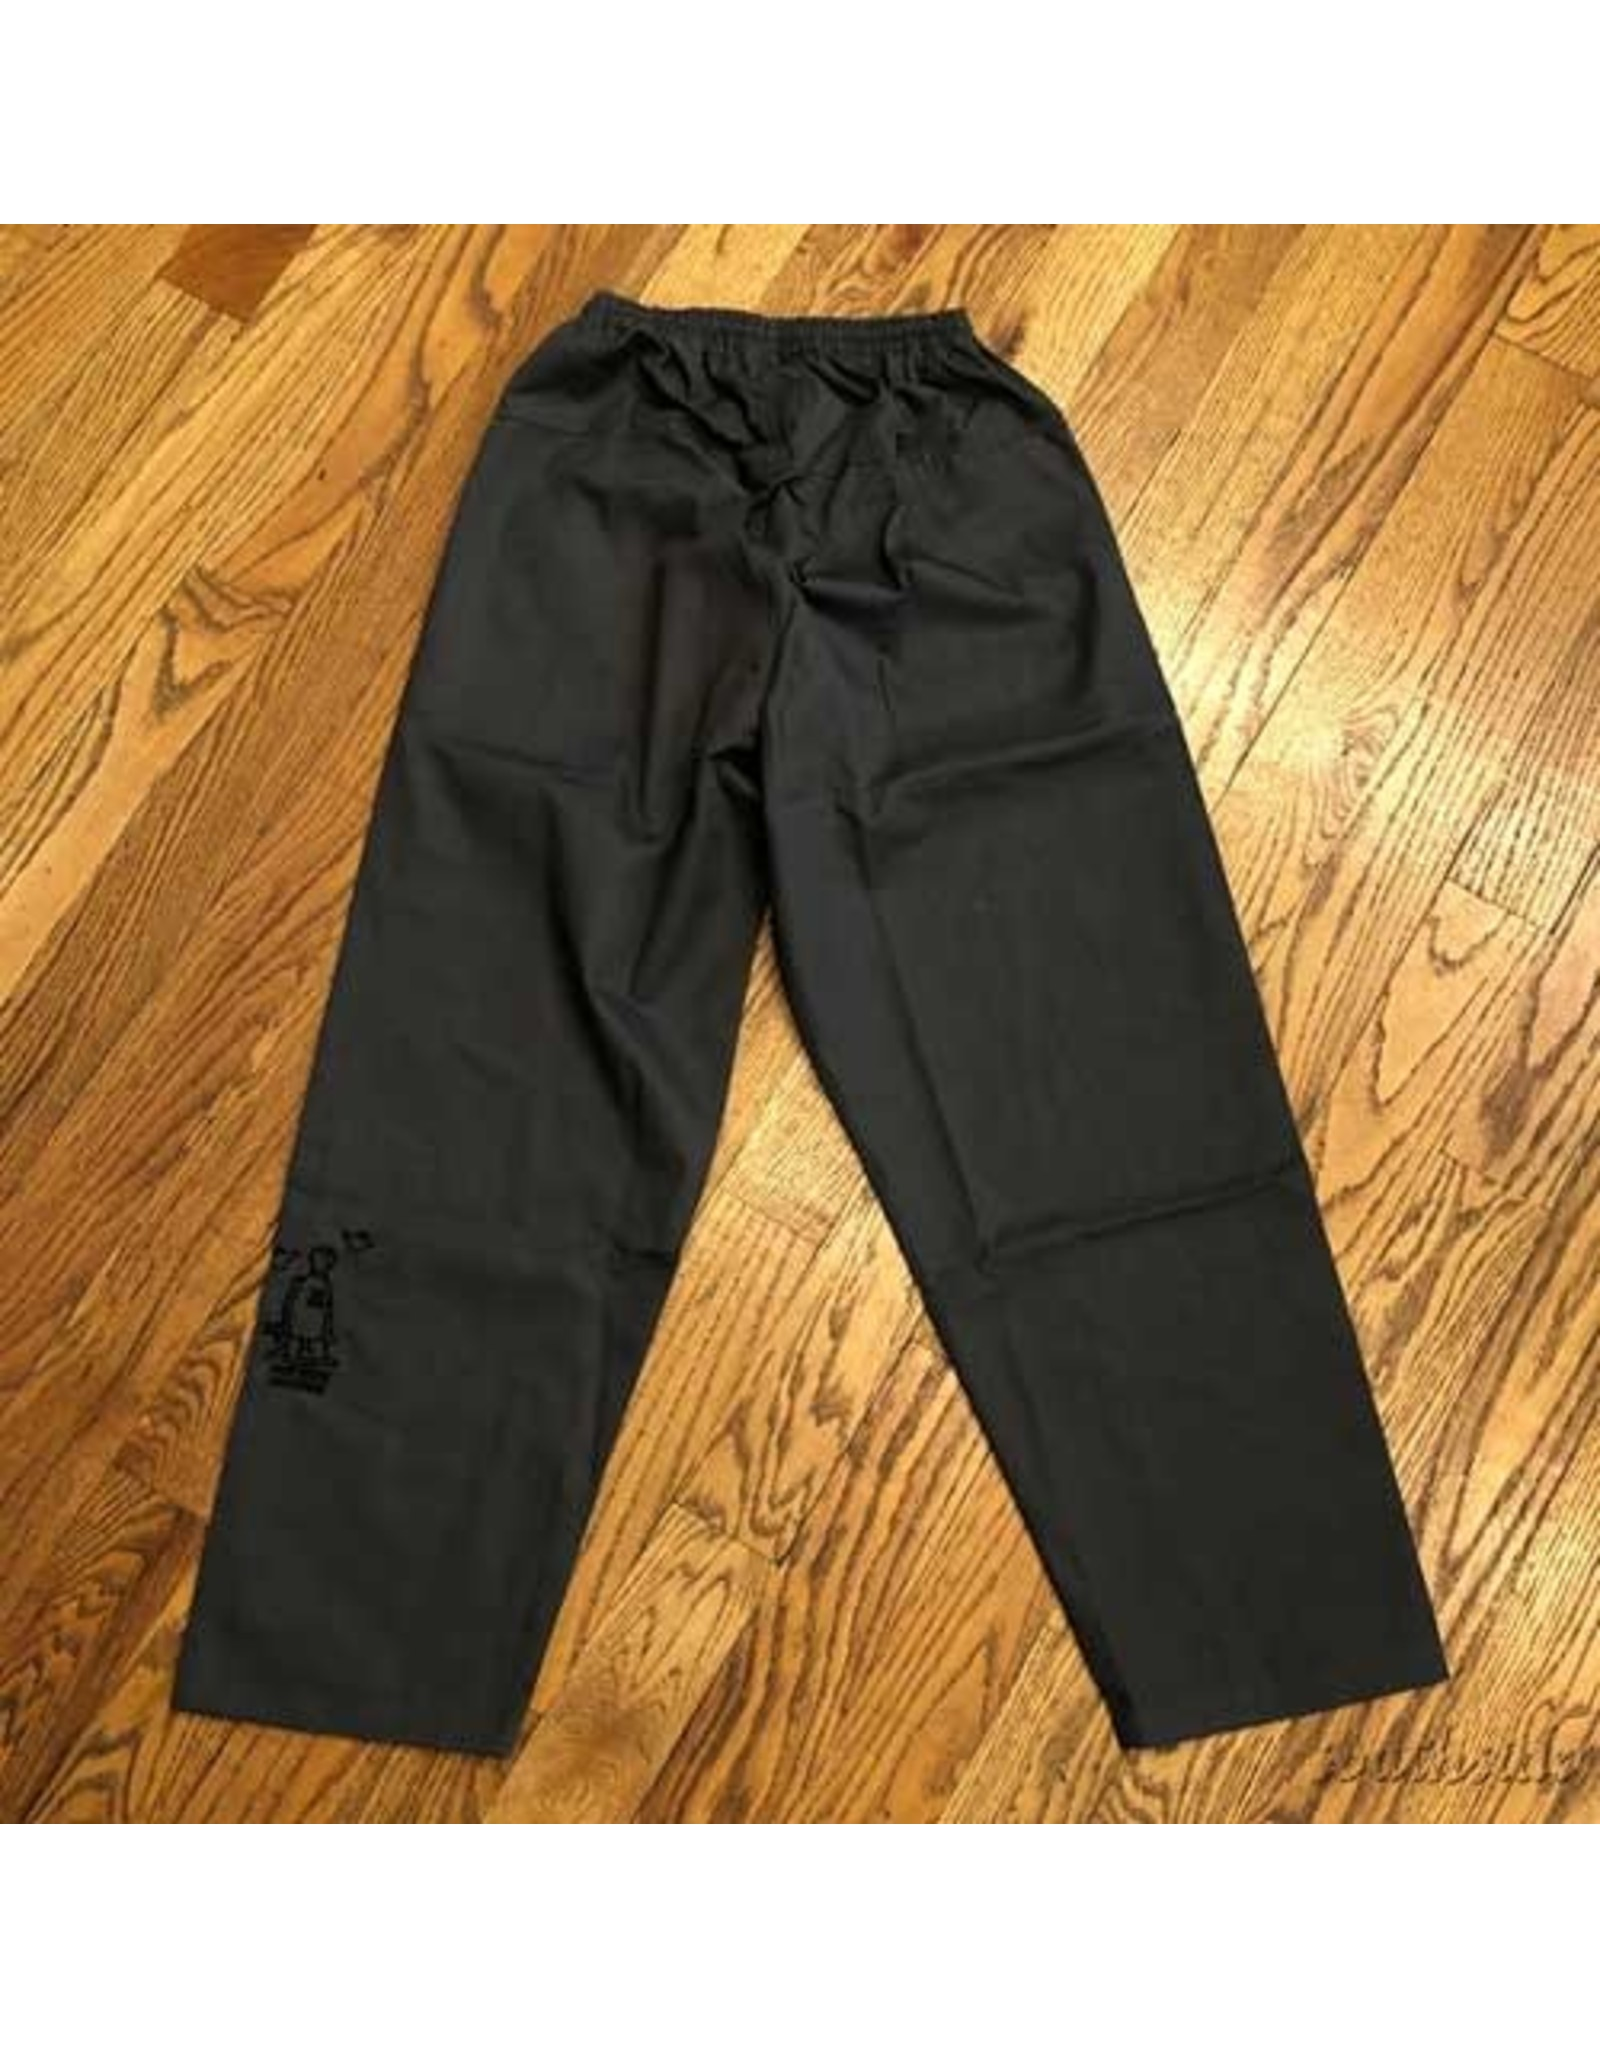 Southside Southside Gonz 94 Pant Charcoal Black Embroidered